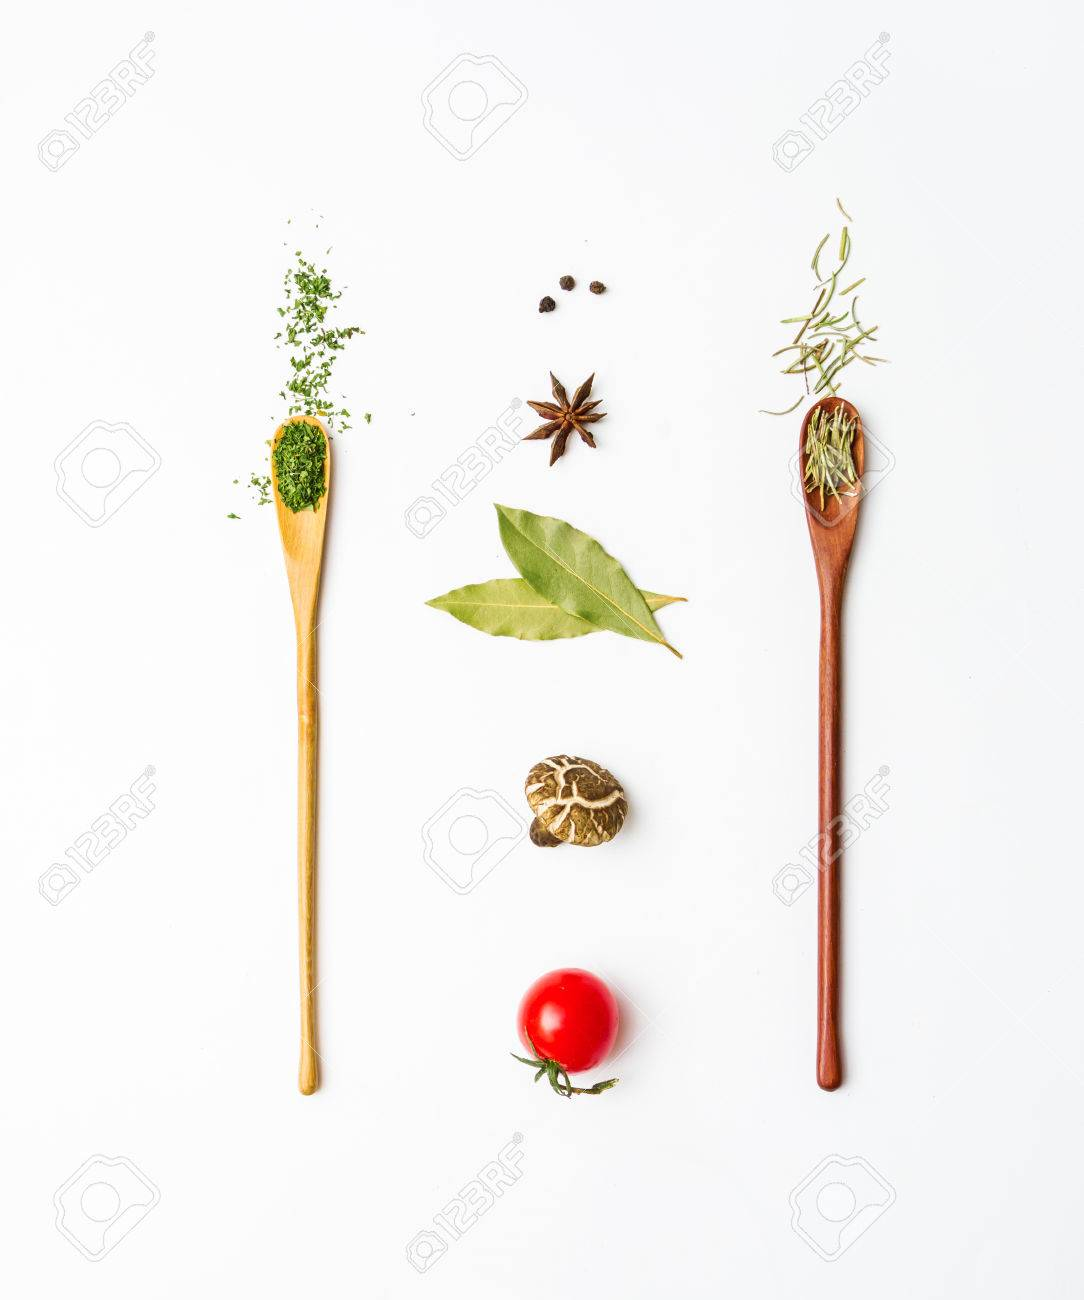 Food and spices herb for cooking background and design. Stock Photo - 42071317